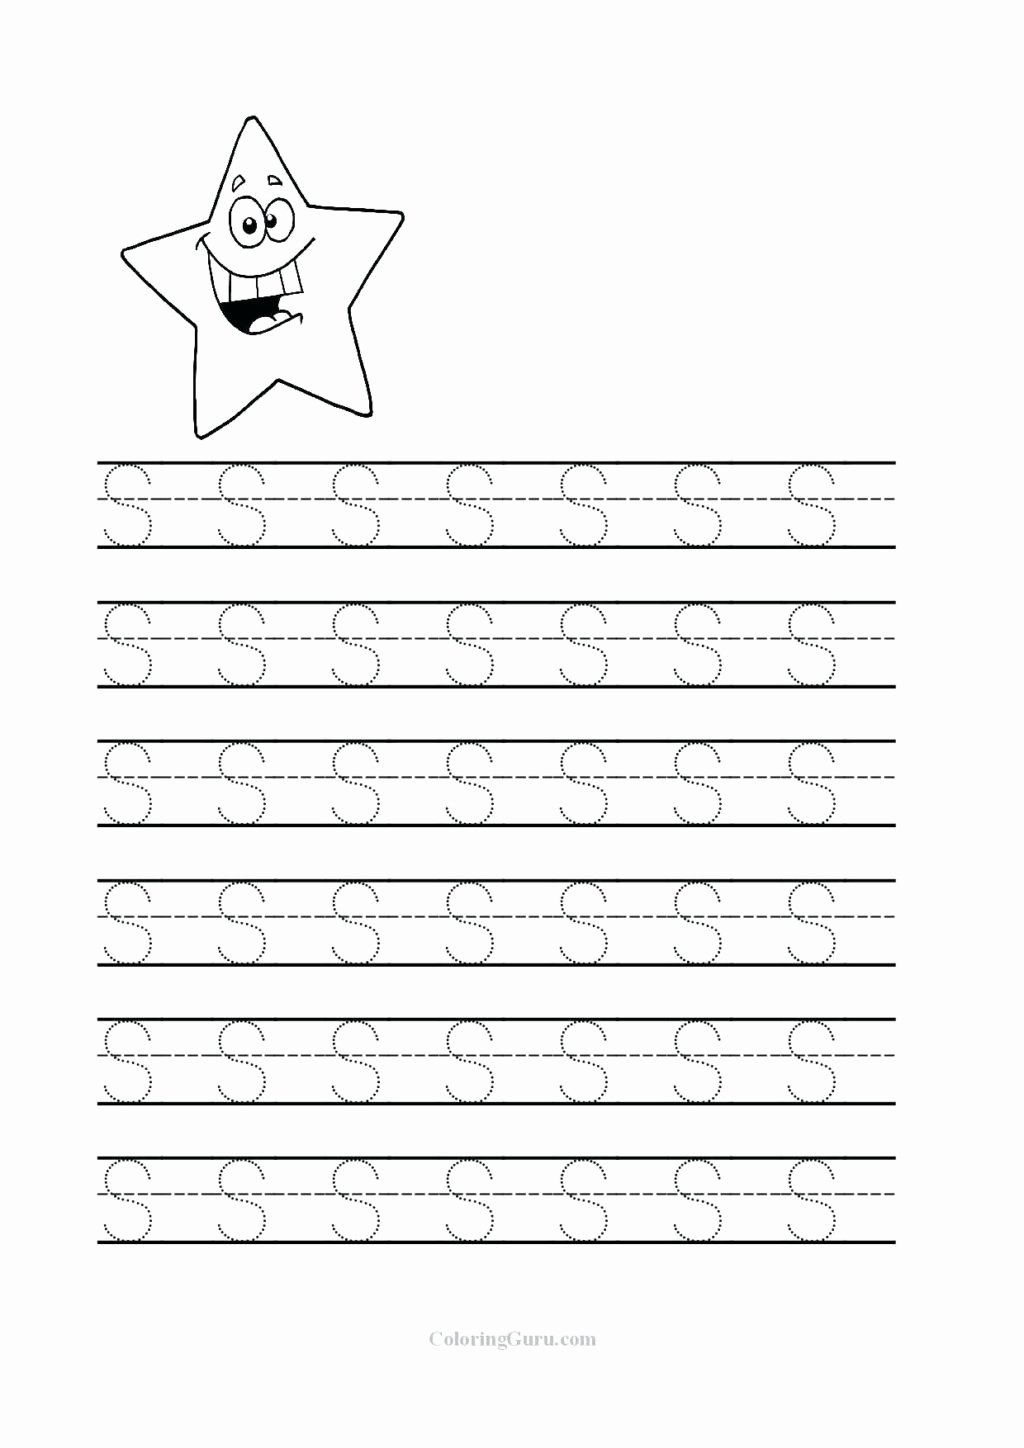 Free Printable Letter S Worksheets for Preschoolers Best Of Worksheet Preschool Tracing Letters Worksheet Free